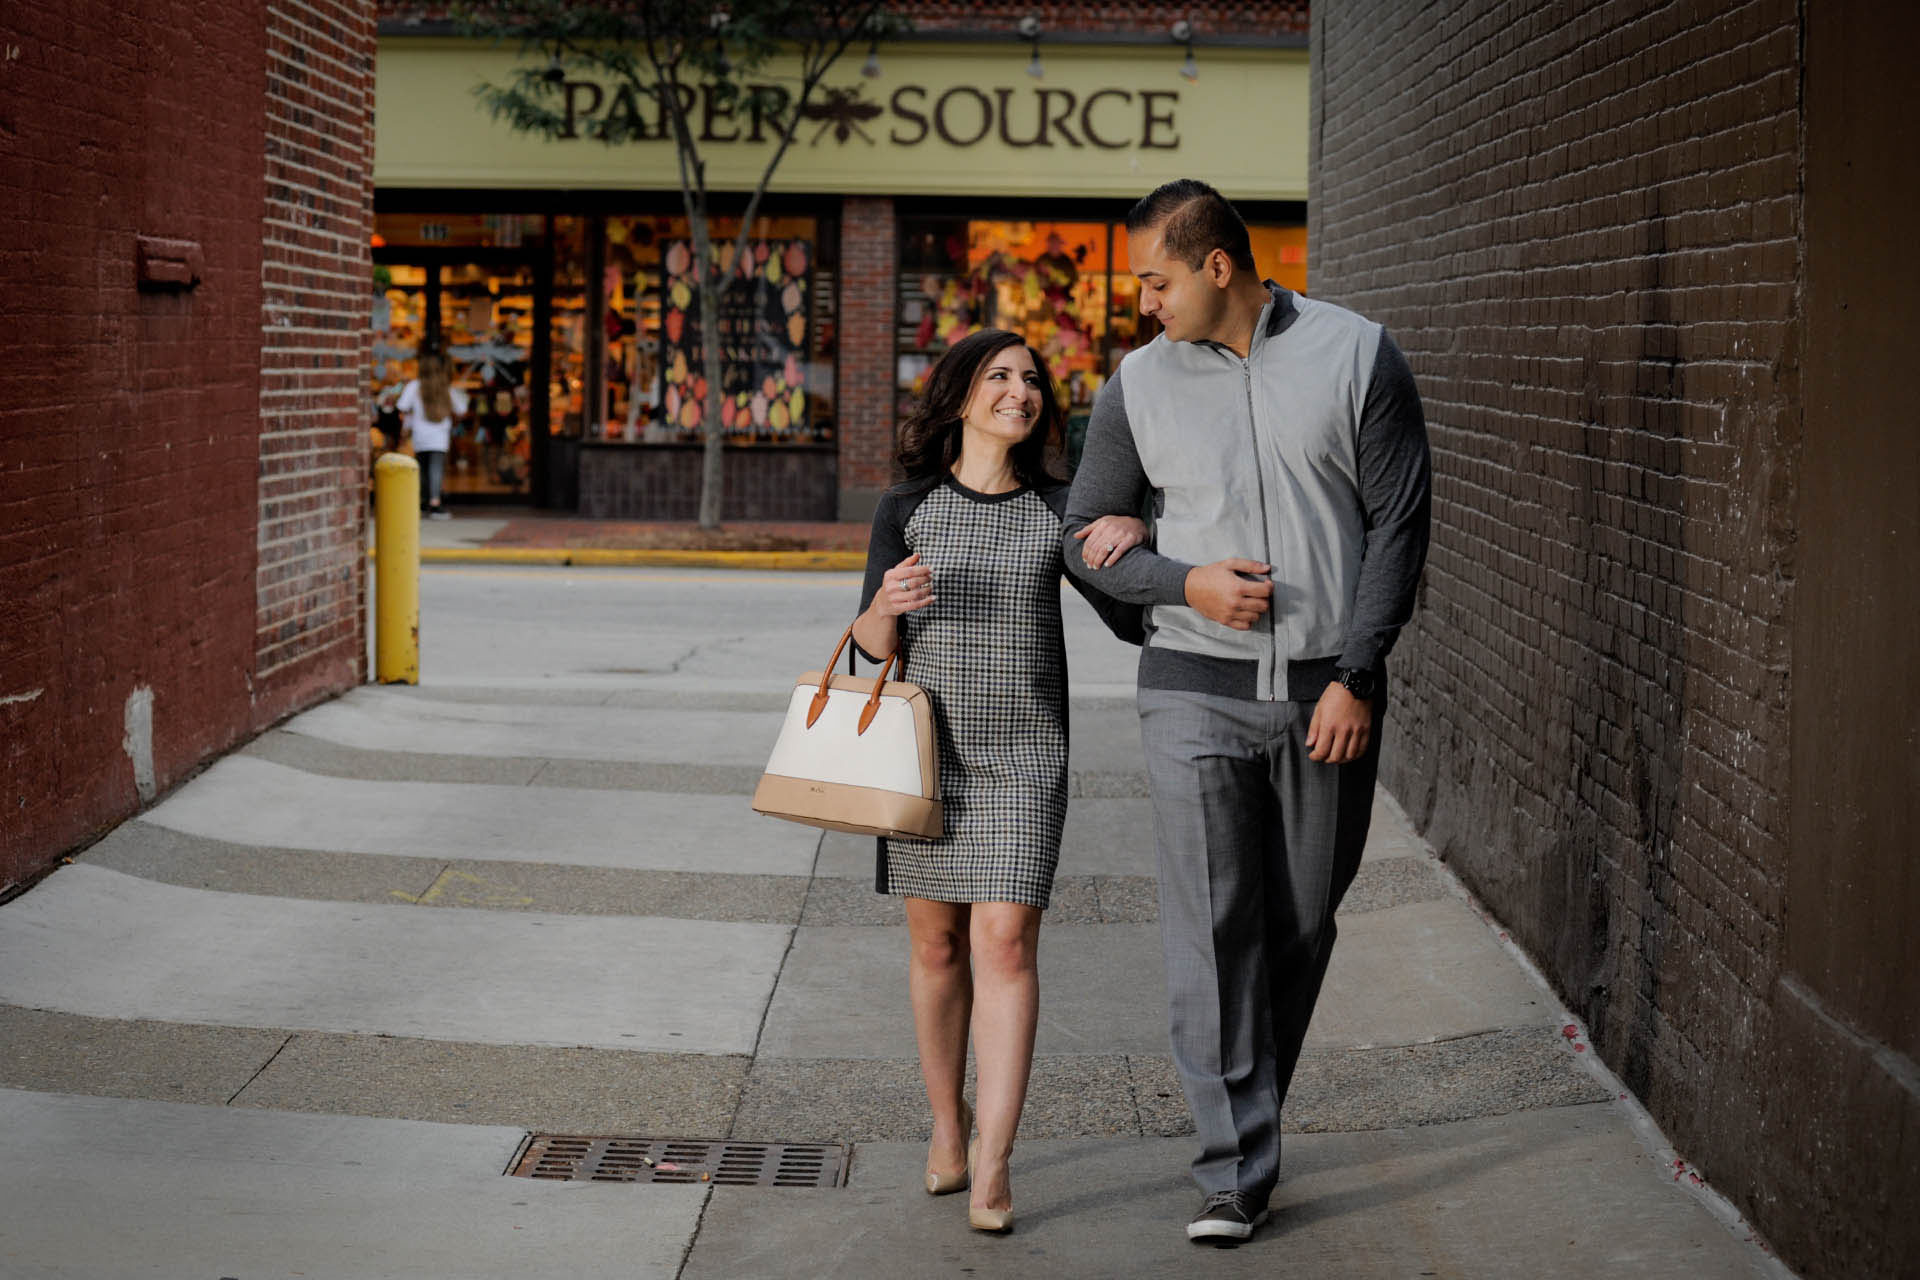 Best Detroit engagement photographer' blends classic engagement photography sessions with lots of fun like this shopping engagement session in Birmingham, Michigan.